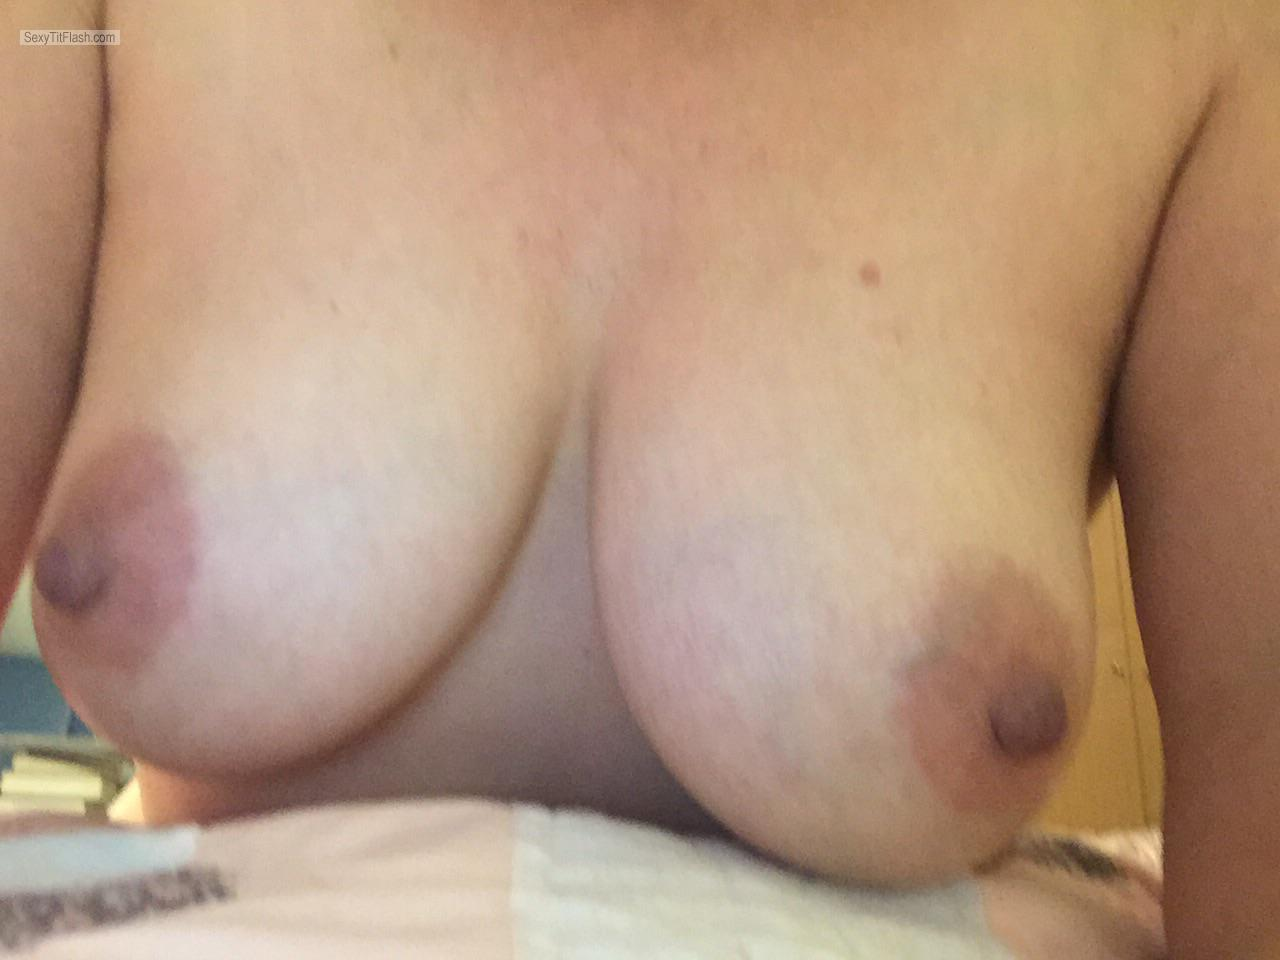 Tit Flash: My Big Tits (Selfie) - Reelnice from United Kingdom